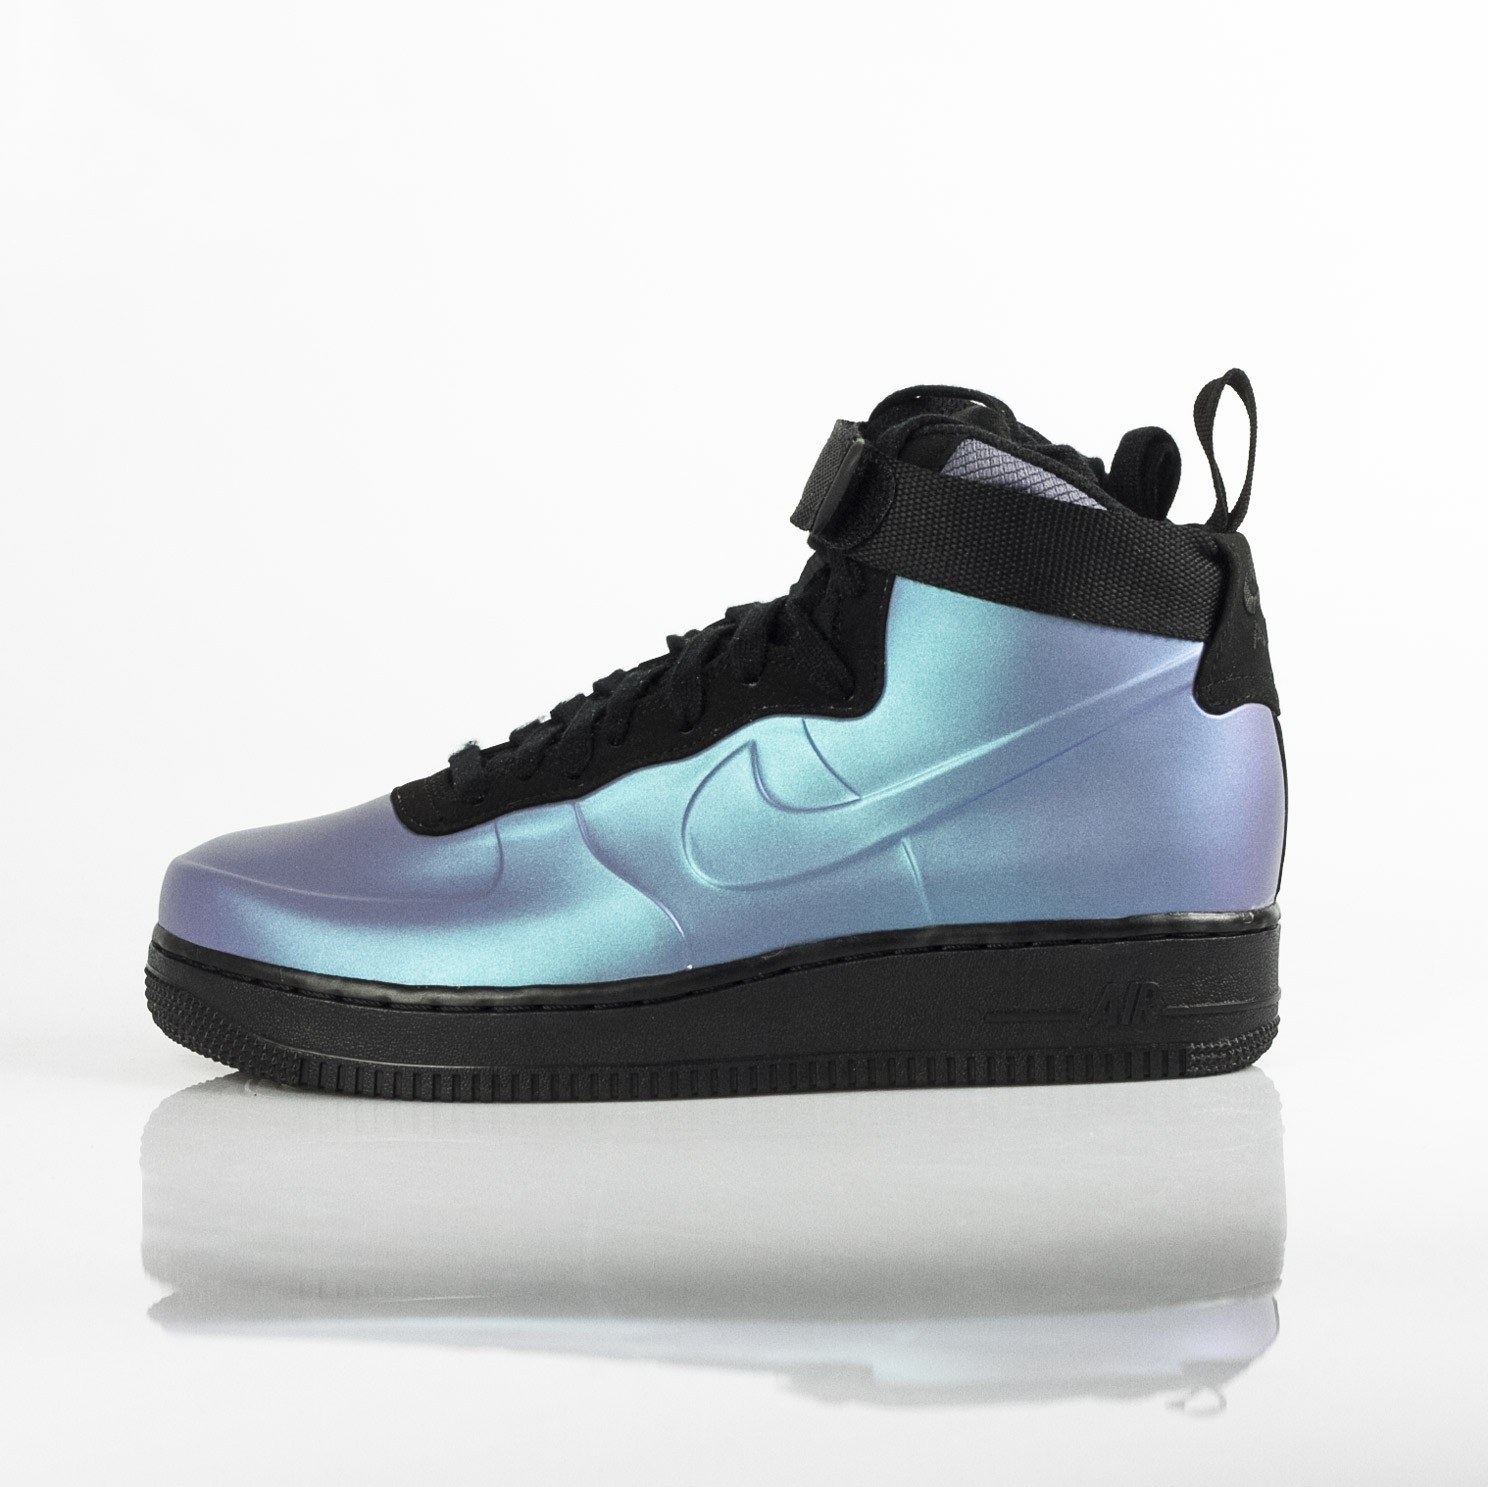 Nike Air Force One Foamposite Light Carbon AF1 Sneaker Review